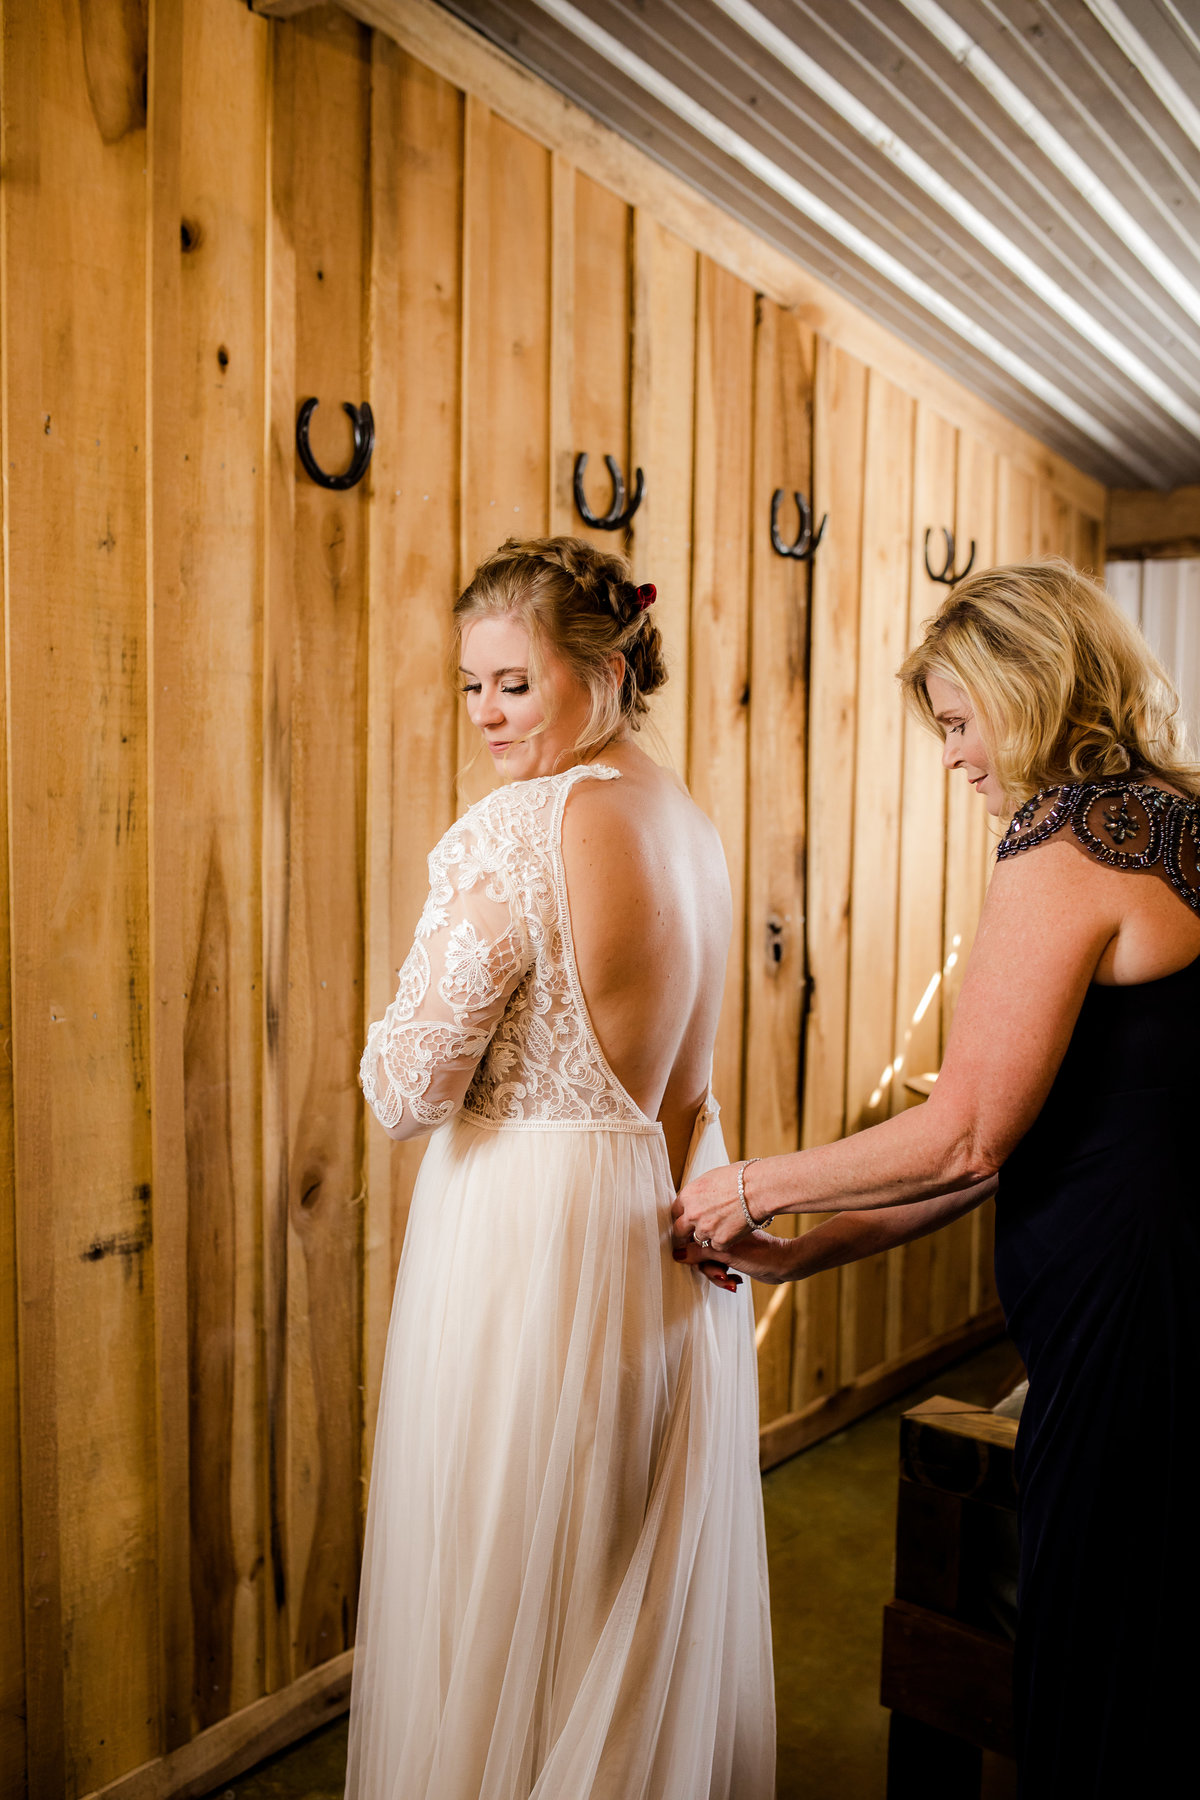 Cactus Creek Barn - Dickson Wedding - Dickson TN - Outdoor Weddings - Outdoor Wedding - Nashville Wedding - Nashville Weddings - Nashville Wedding Photographer - Nashville Wedding Photographers094